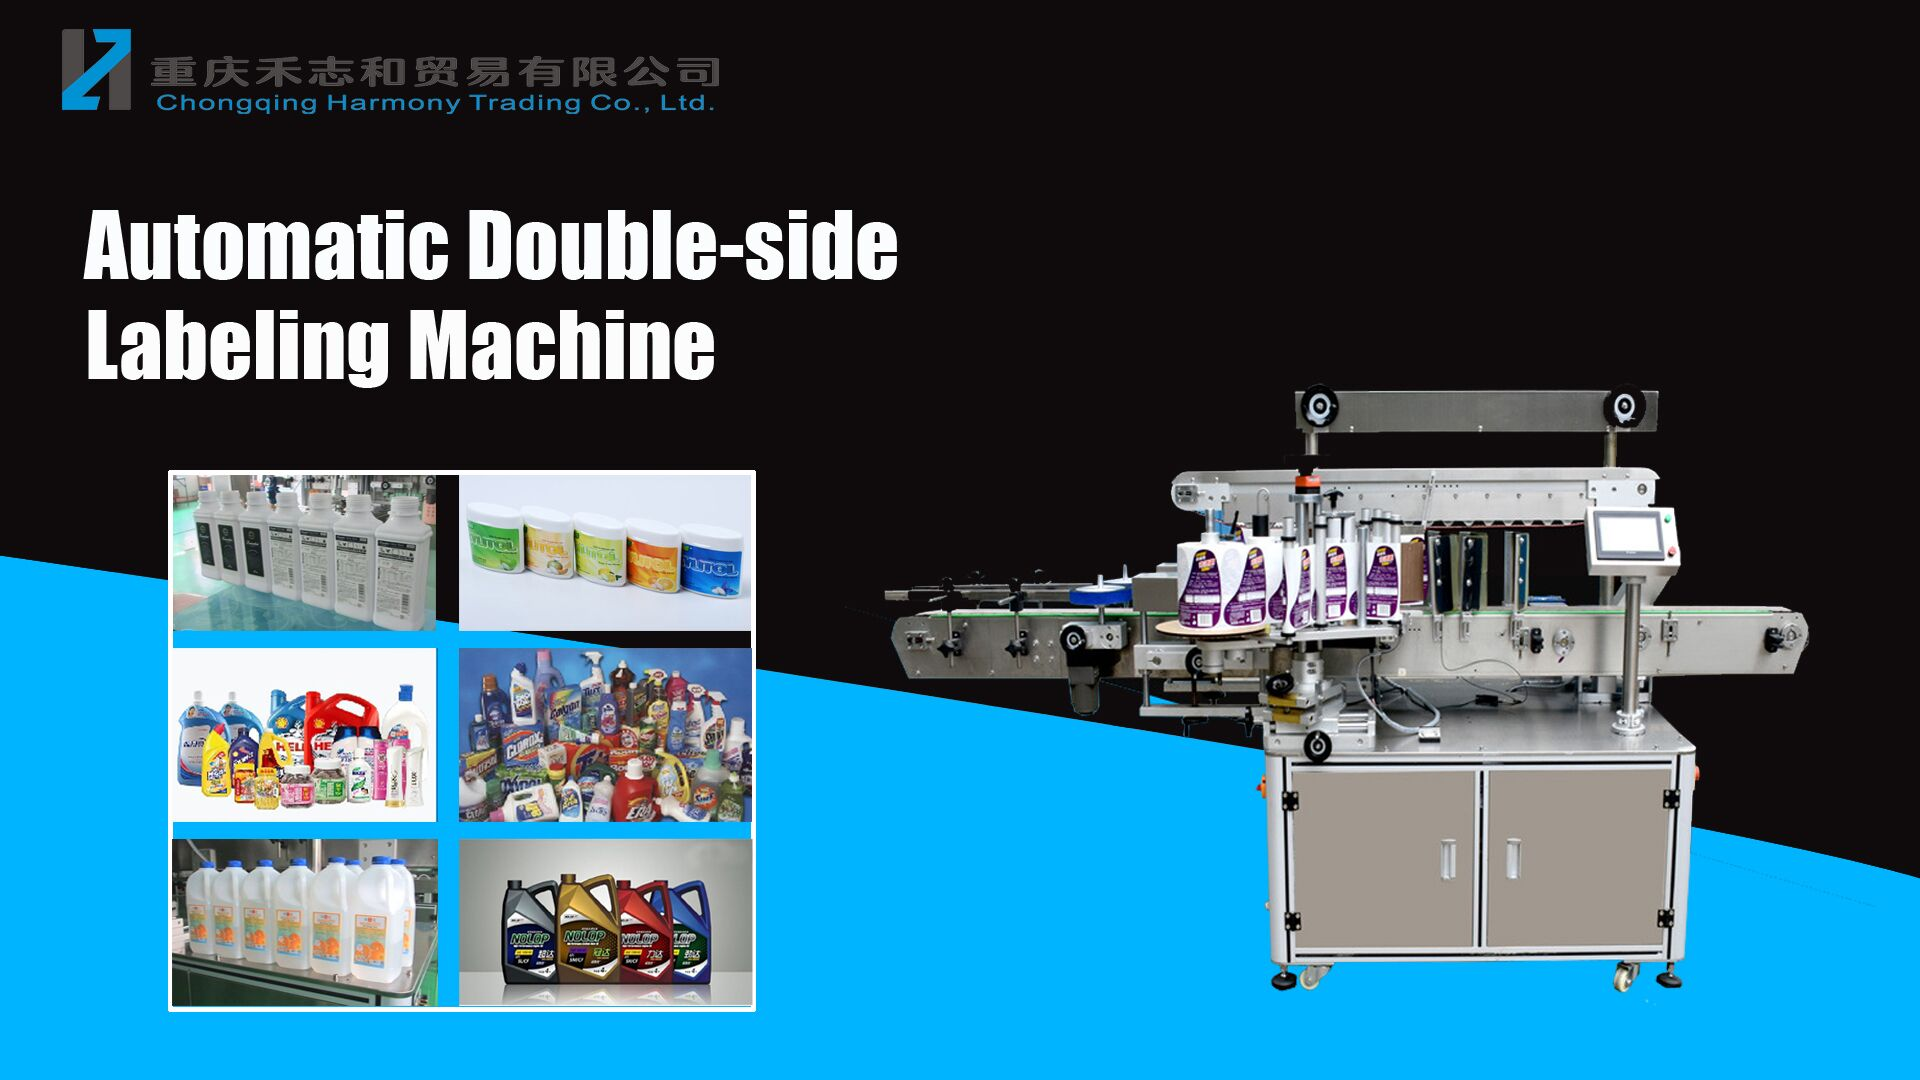 Automatic Double-side Labeling Machine